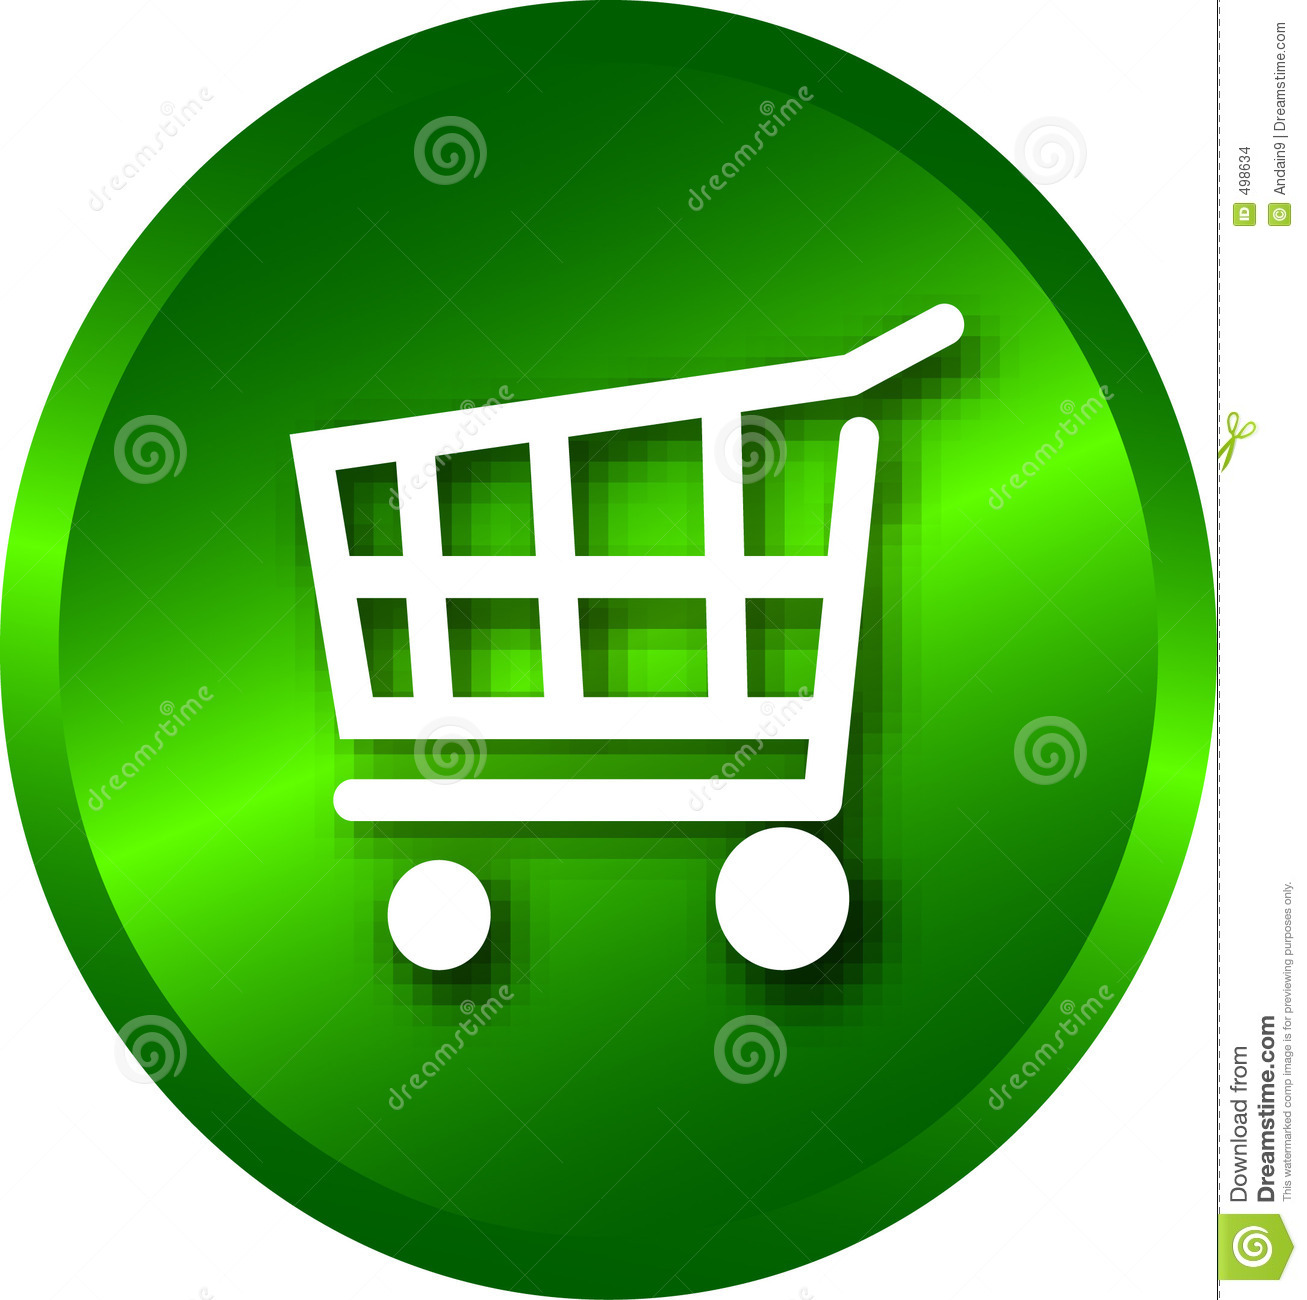 Web Shopping Stock Images - Image: 498634: www.dreamstime.com/stock-images-web-shopping-image498634